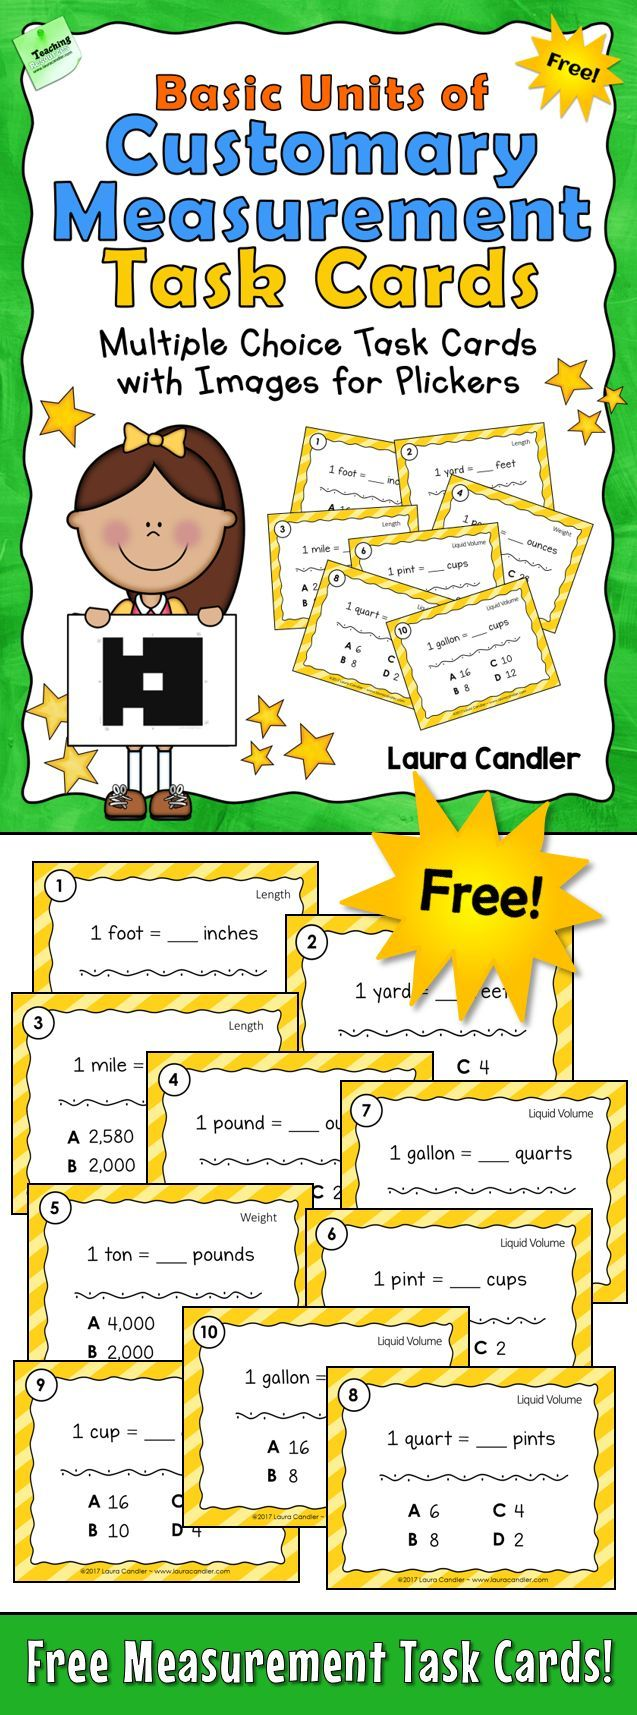 Free Basic Units of Customary Measurement Task Cards! Includes 10 multiple choice task cards in two different formats, printable task cards and image files to use with Plickers, as well as a recording form and answer key. Great for assessing knowledge of basic units of length, weight, and liquid volume prior to teaching students how to convert between customary measurement units.